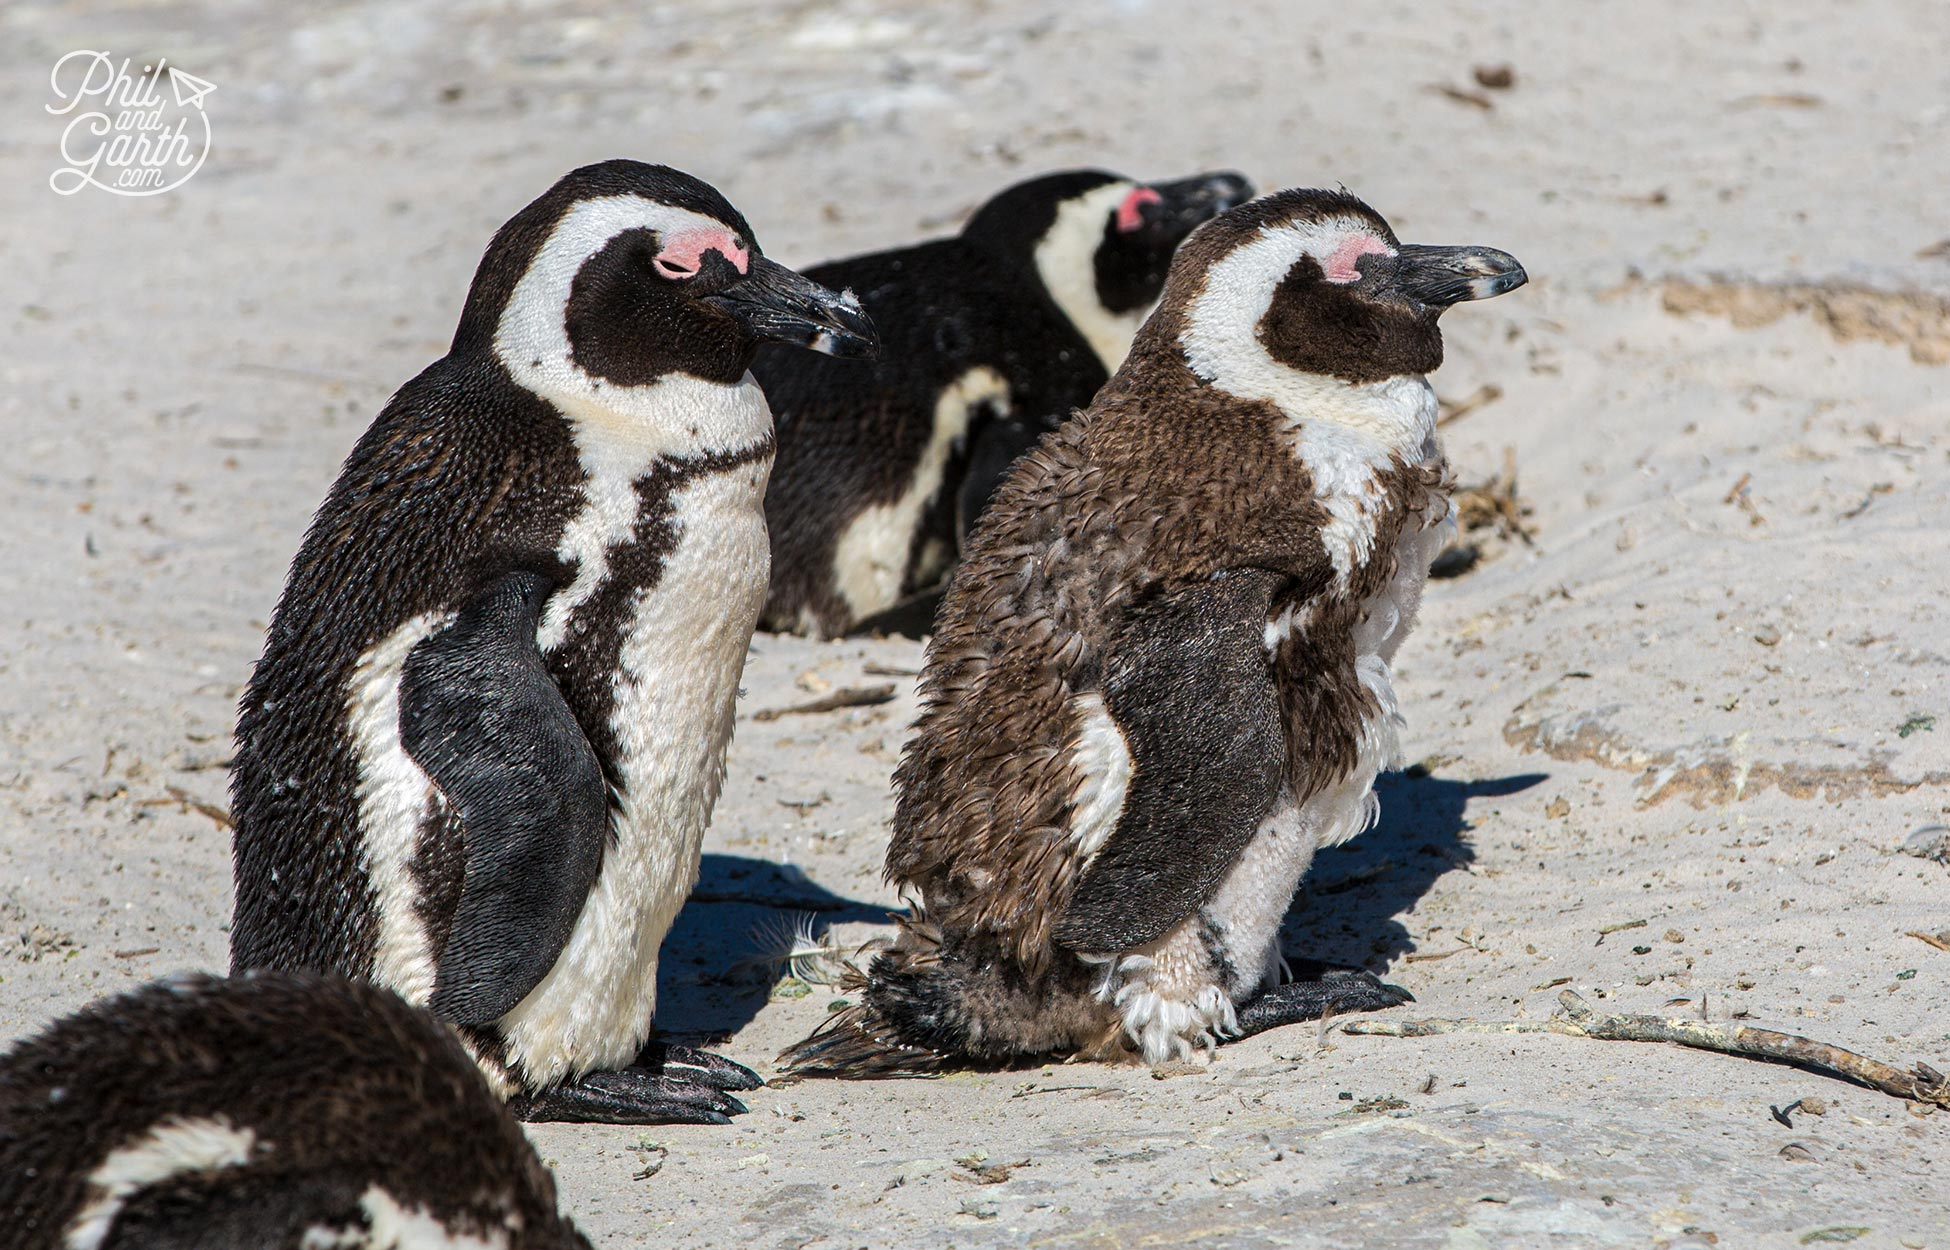 Penguins moult annually - they are confined to land for 21 days until the old feathers are replaced.